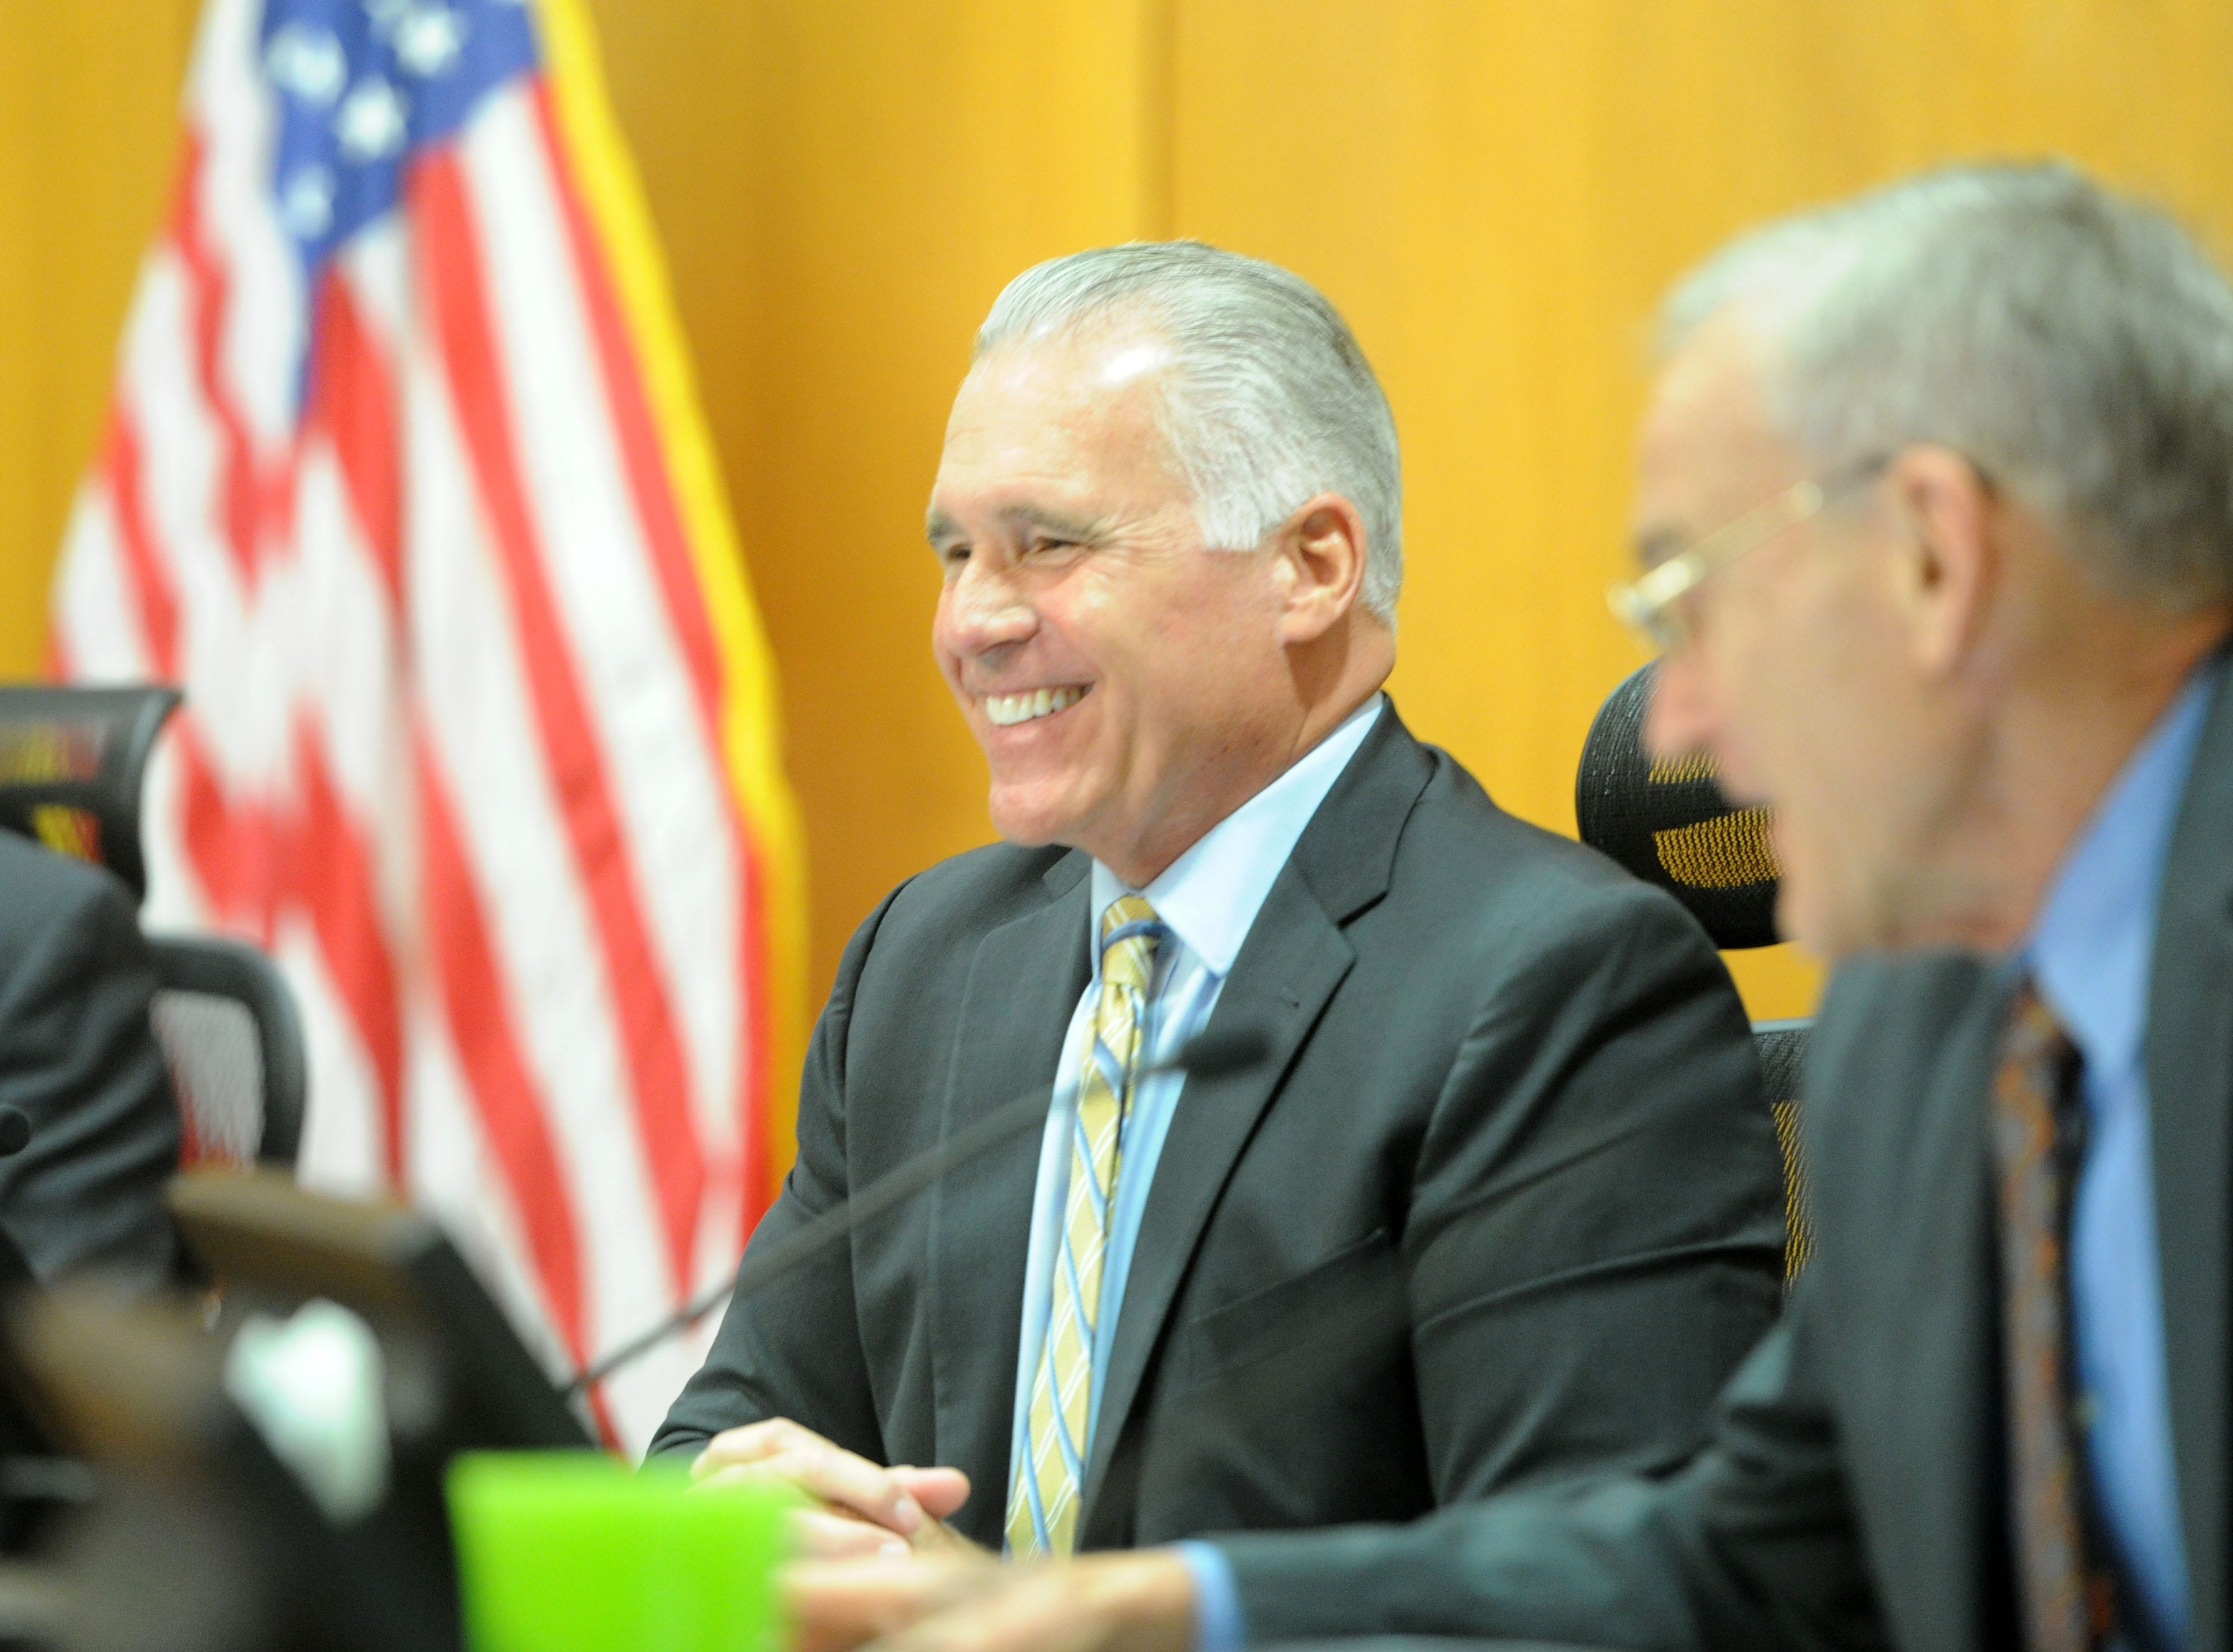 Supervisor Peter Foy smiles at the crowd attending a farewell ceremony for him at the Board of Supervisors hearing room in Ventura.